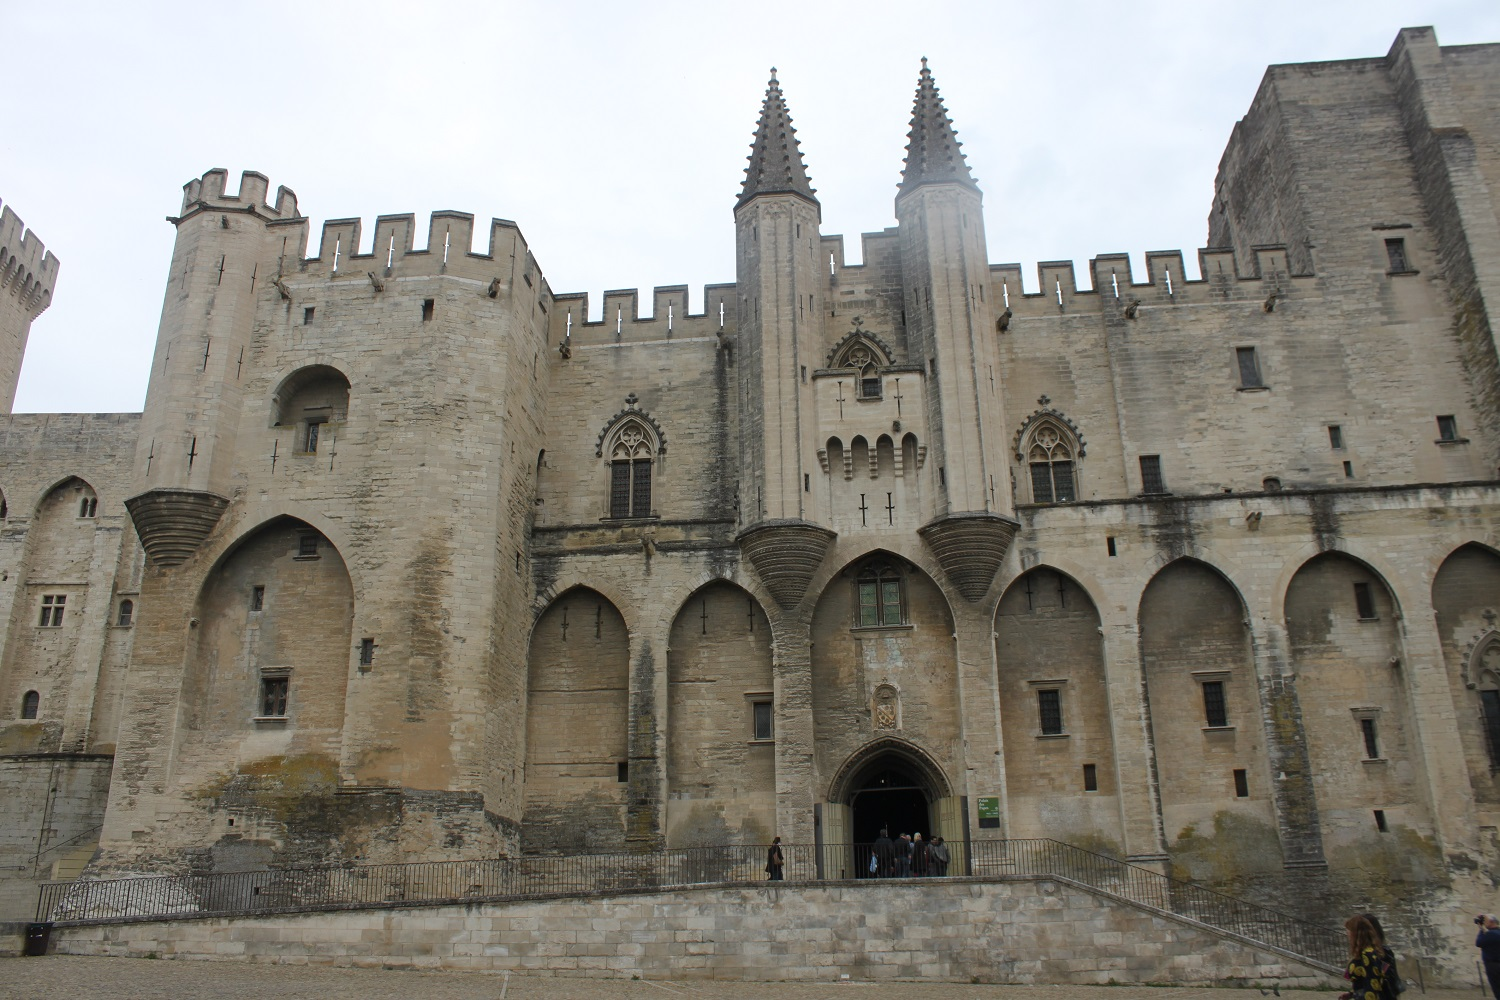 Highlight: Avignon